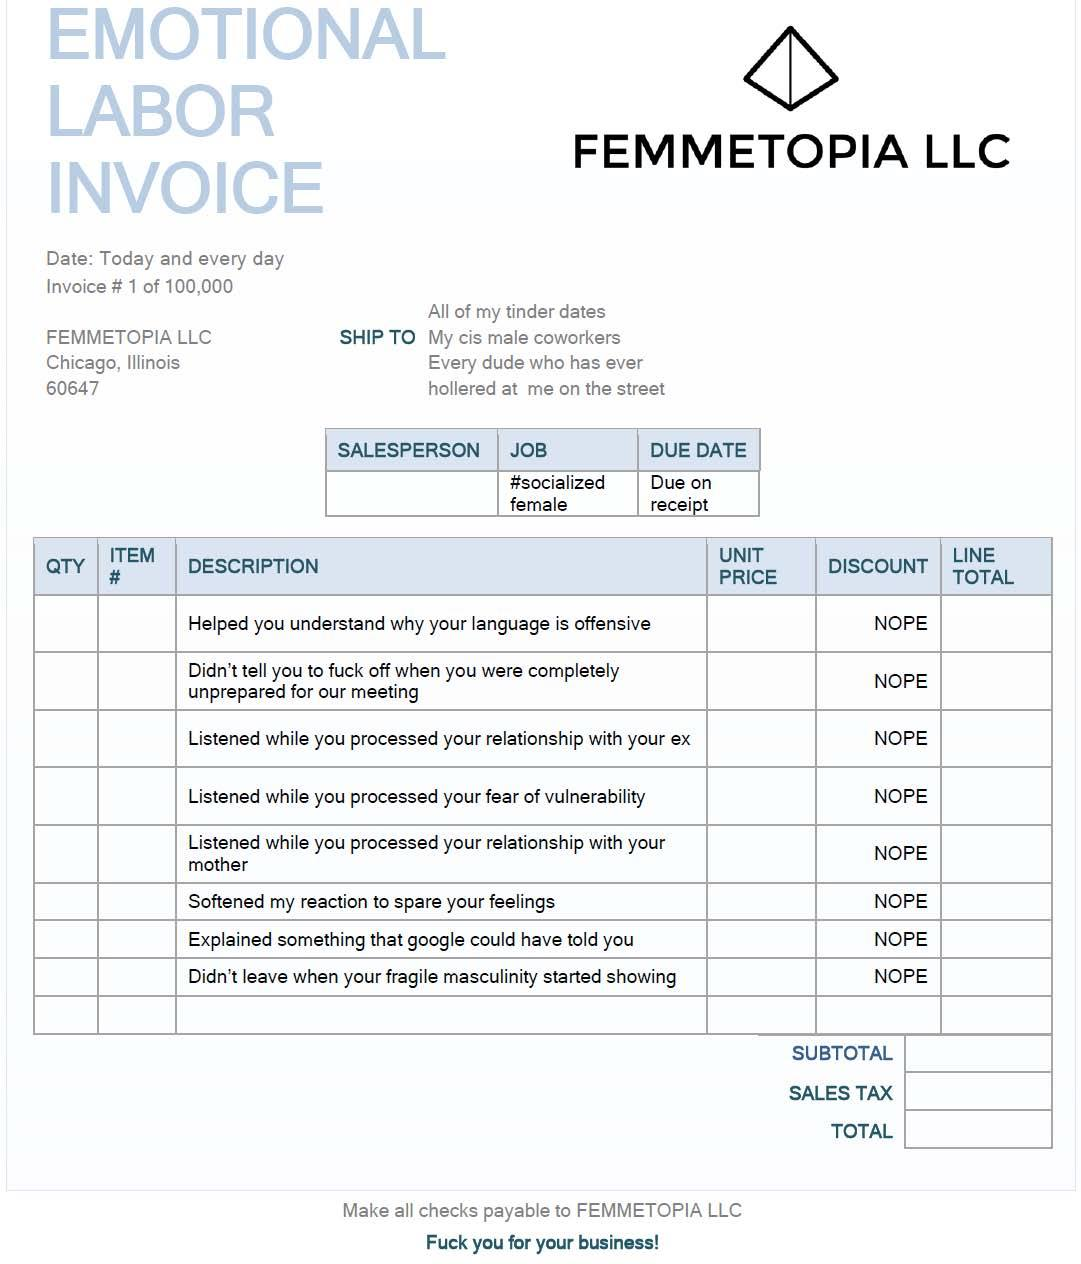 Senthorun Raj On Twitter Fyi Here S An Invoice Template To Use For The Next Time You Need To Bill Someone For Your Emotional Labour Ht Kate Faith Https T Co Z4ivnjd0r6